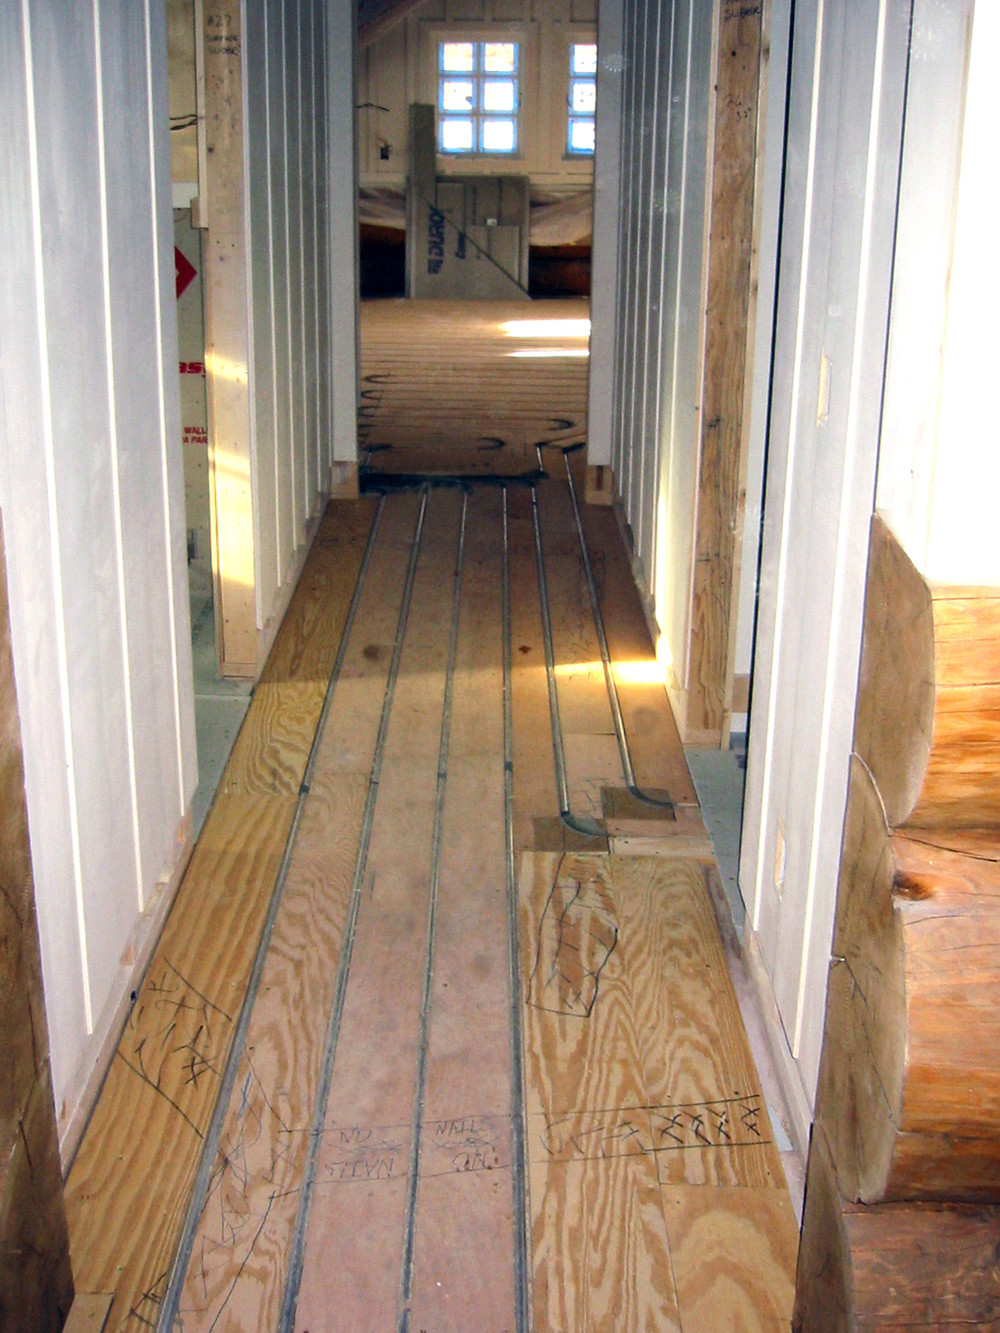 How Do You Install Hardwood Floors On Concrete Of Tfinu Radiant Design Supply Inc with Regard to Log Hallway